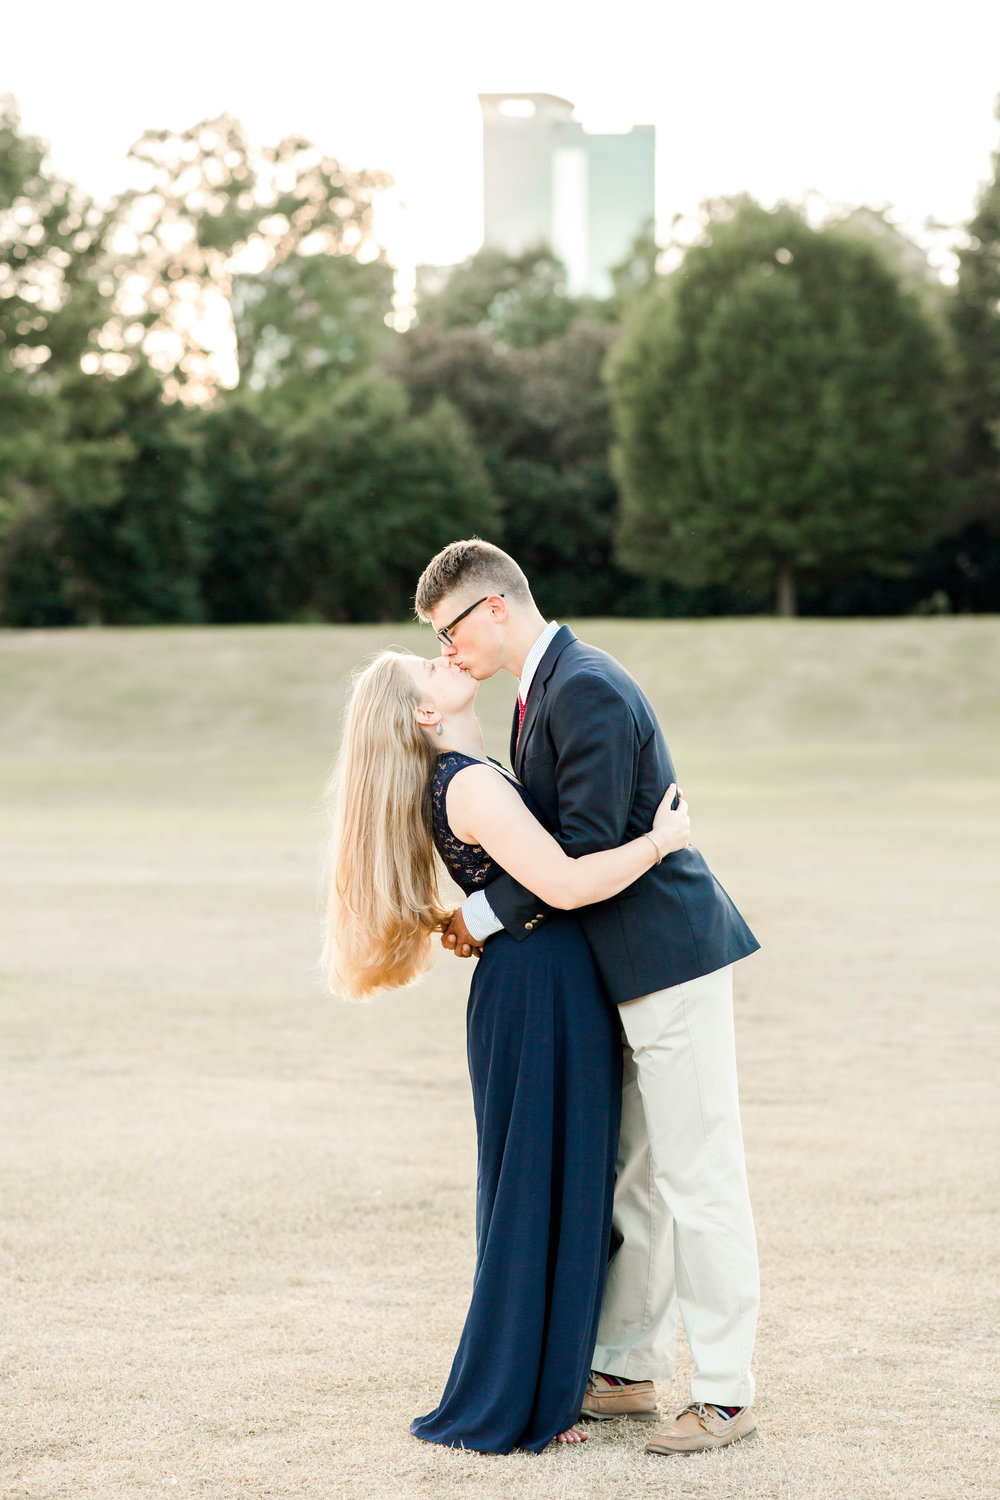 MaryElizabeth_Will_Engagement-136.JPG